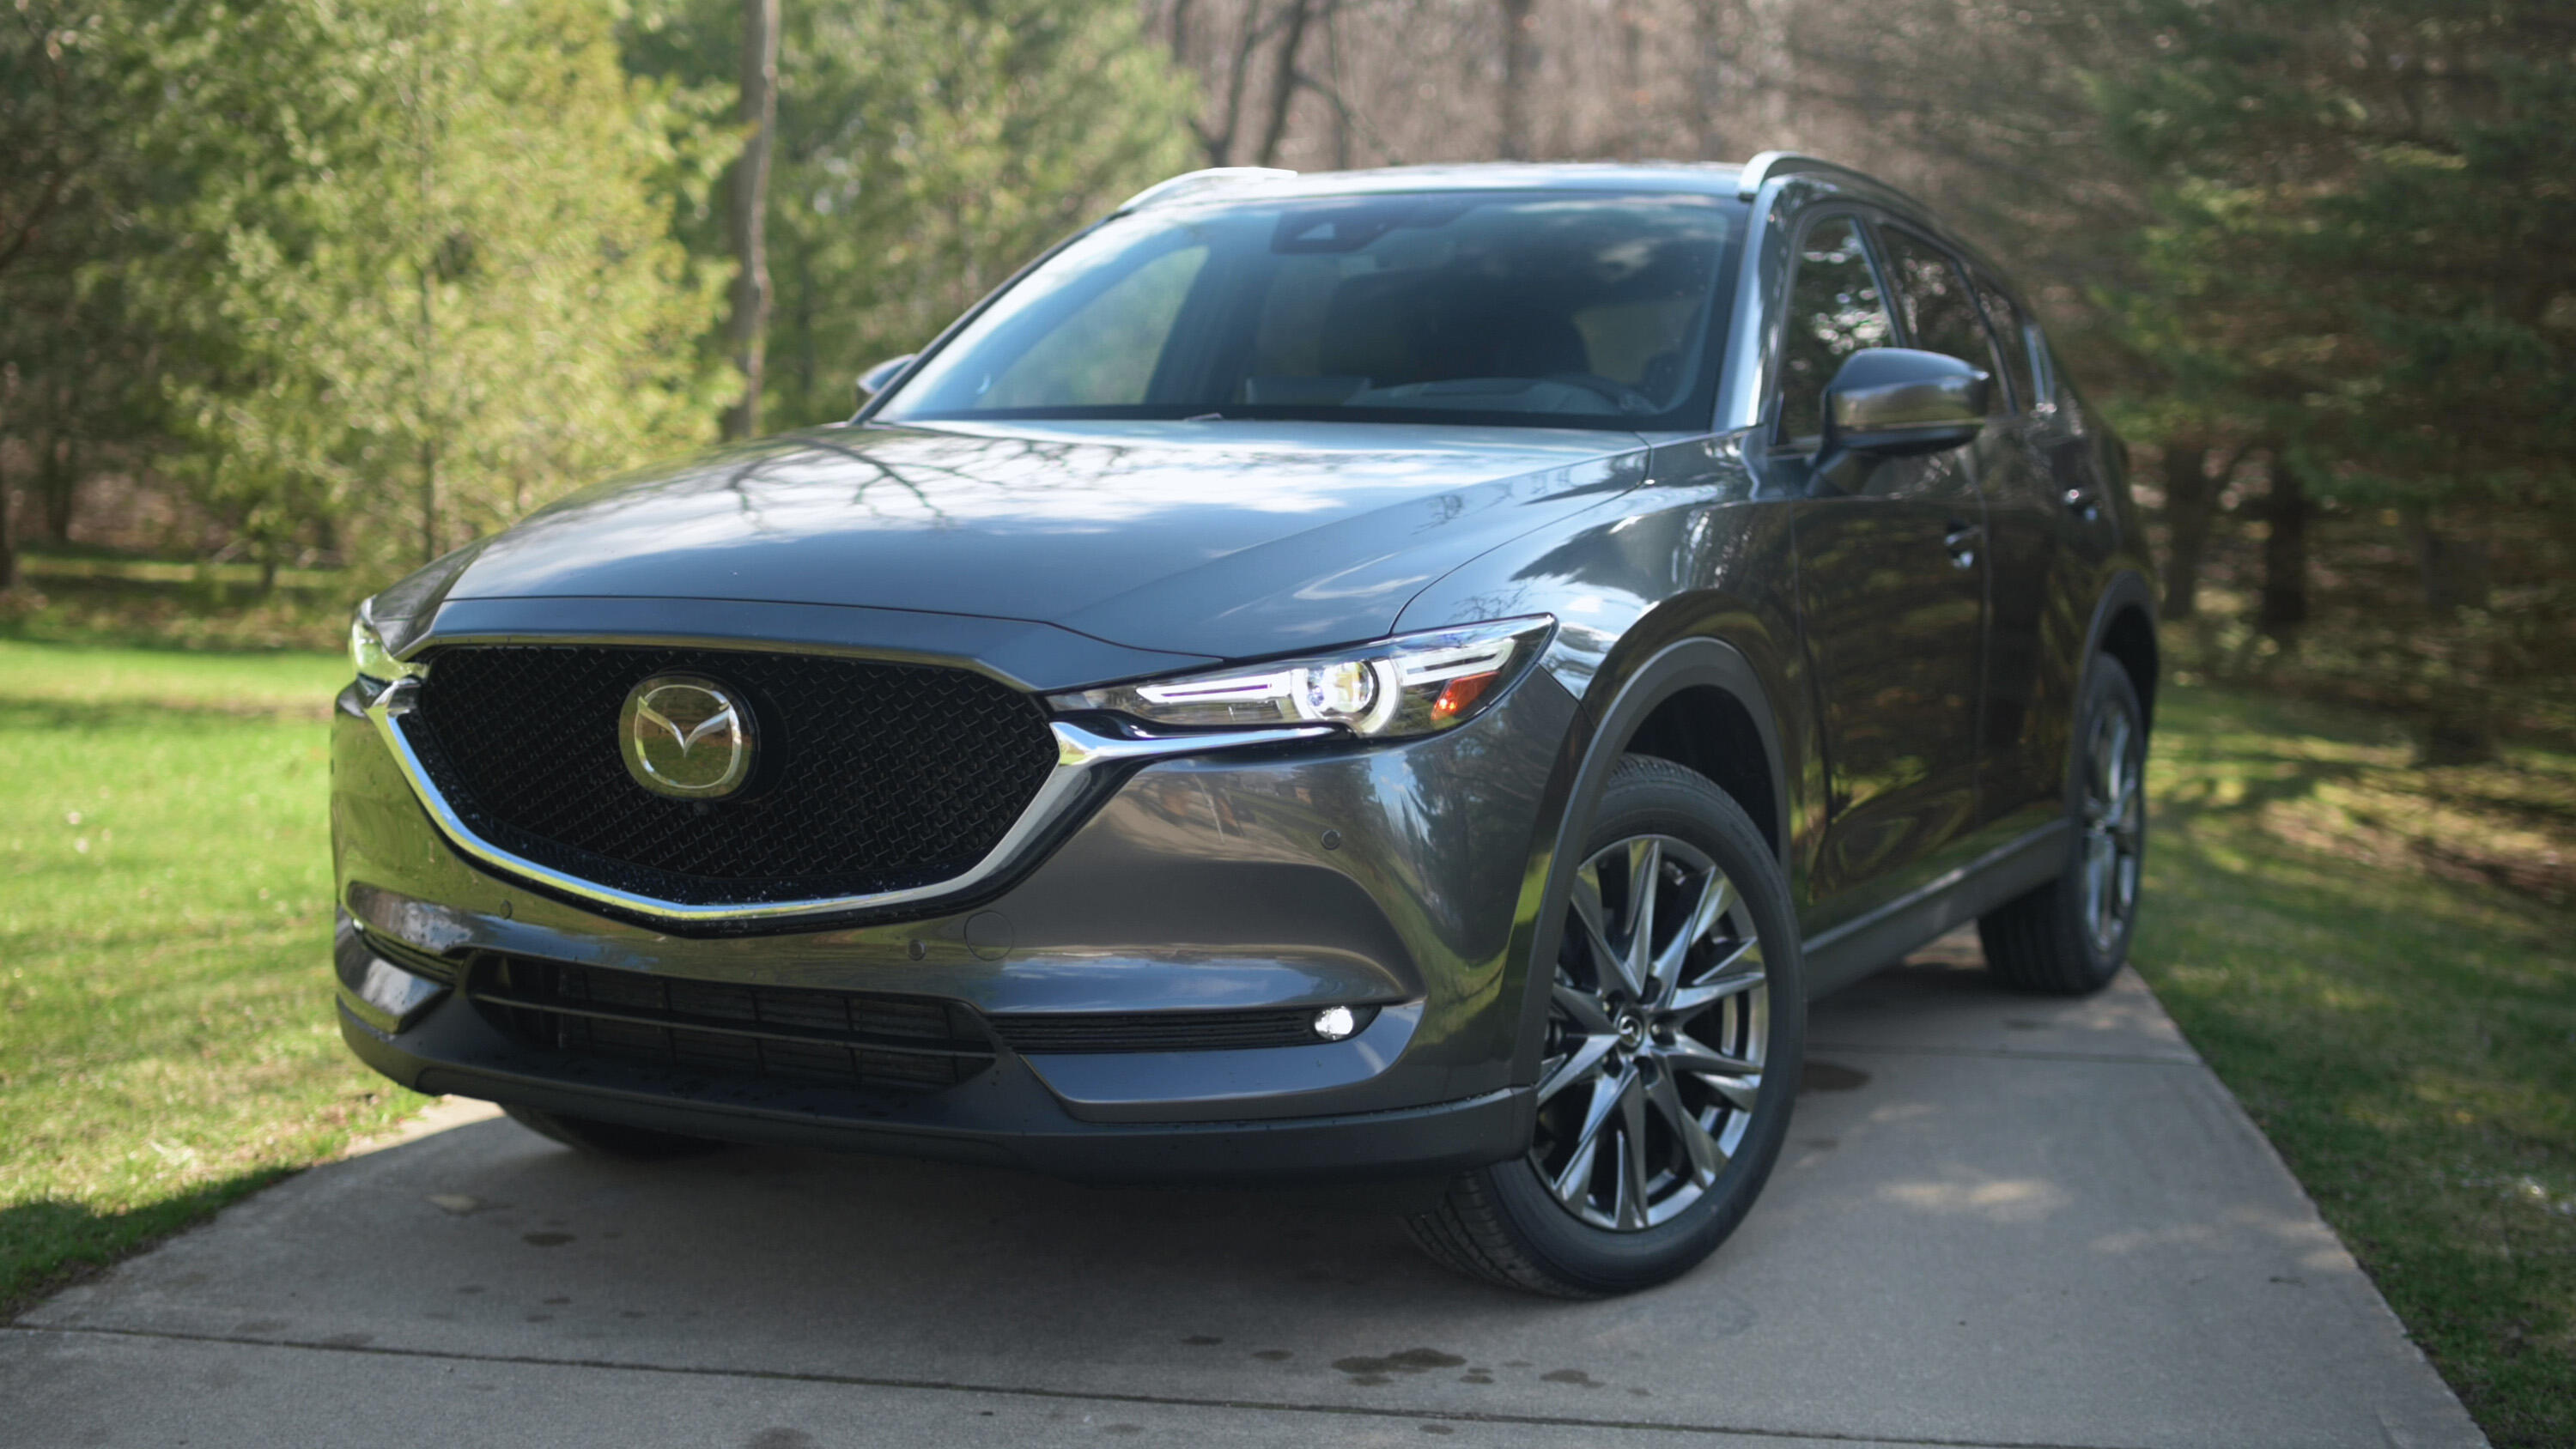 Video: 2020 Mazda CX-5: Affordable luxury